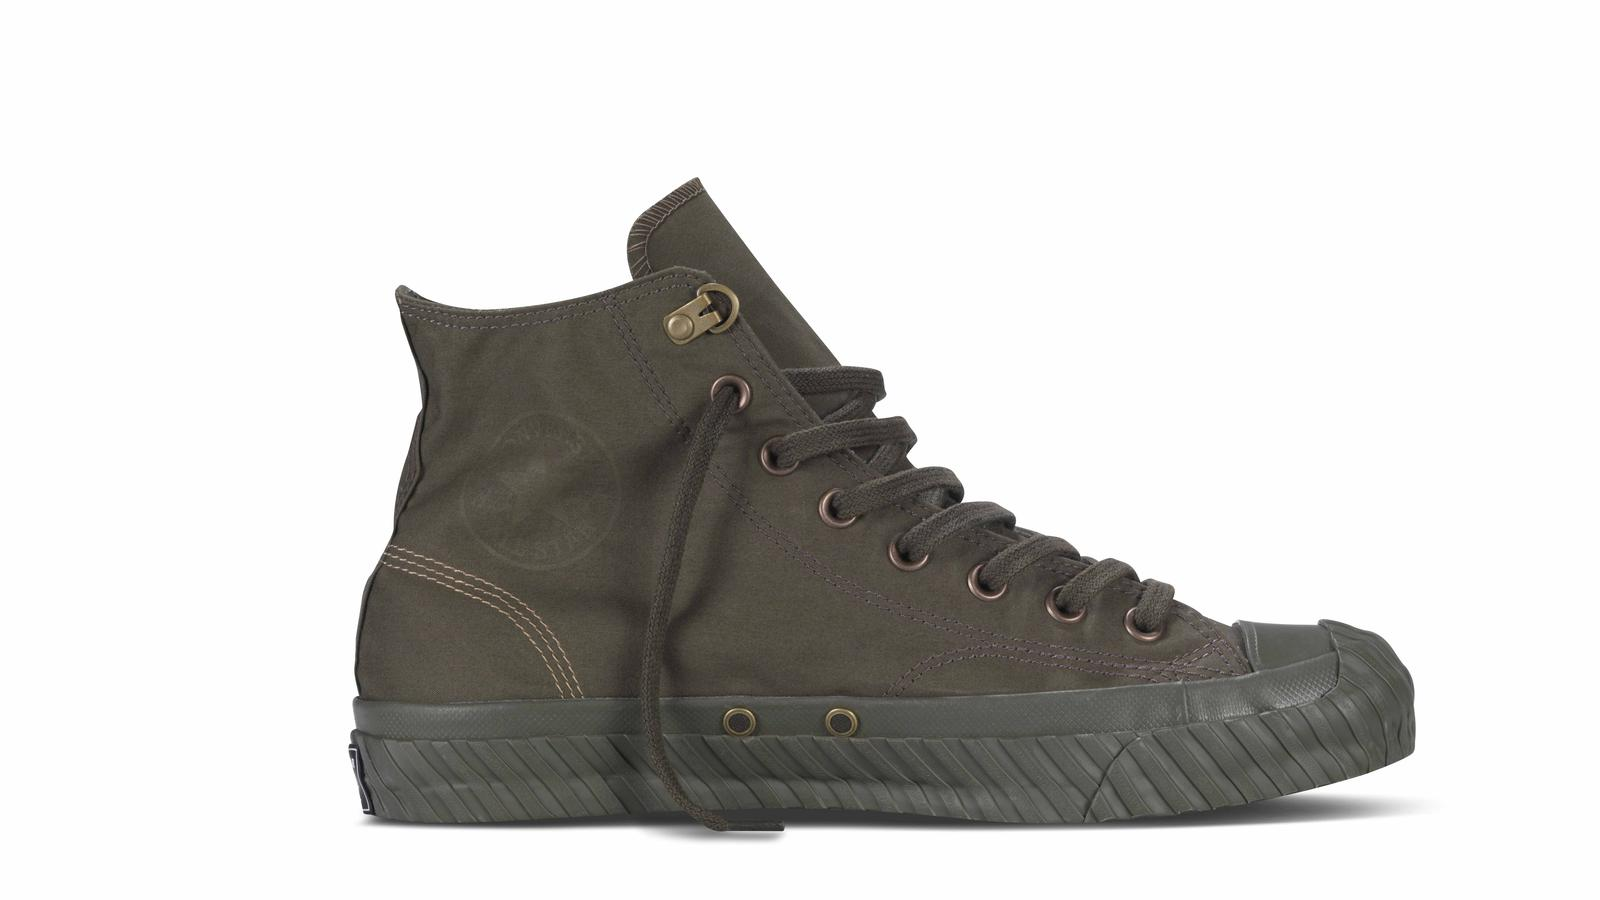 Nigel Cabourn Brings Military Influence to New Converse